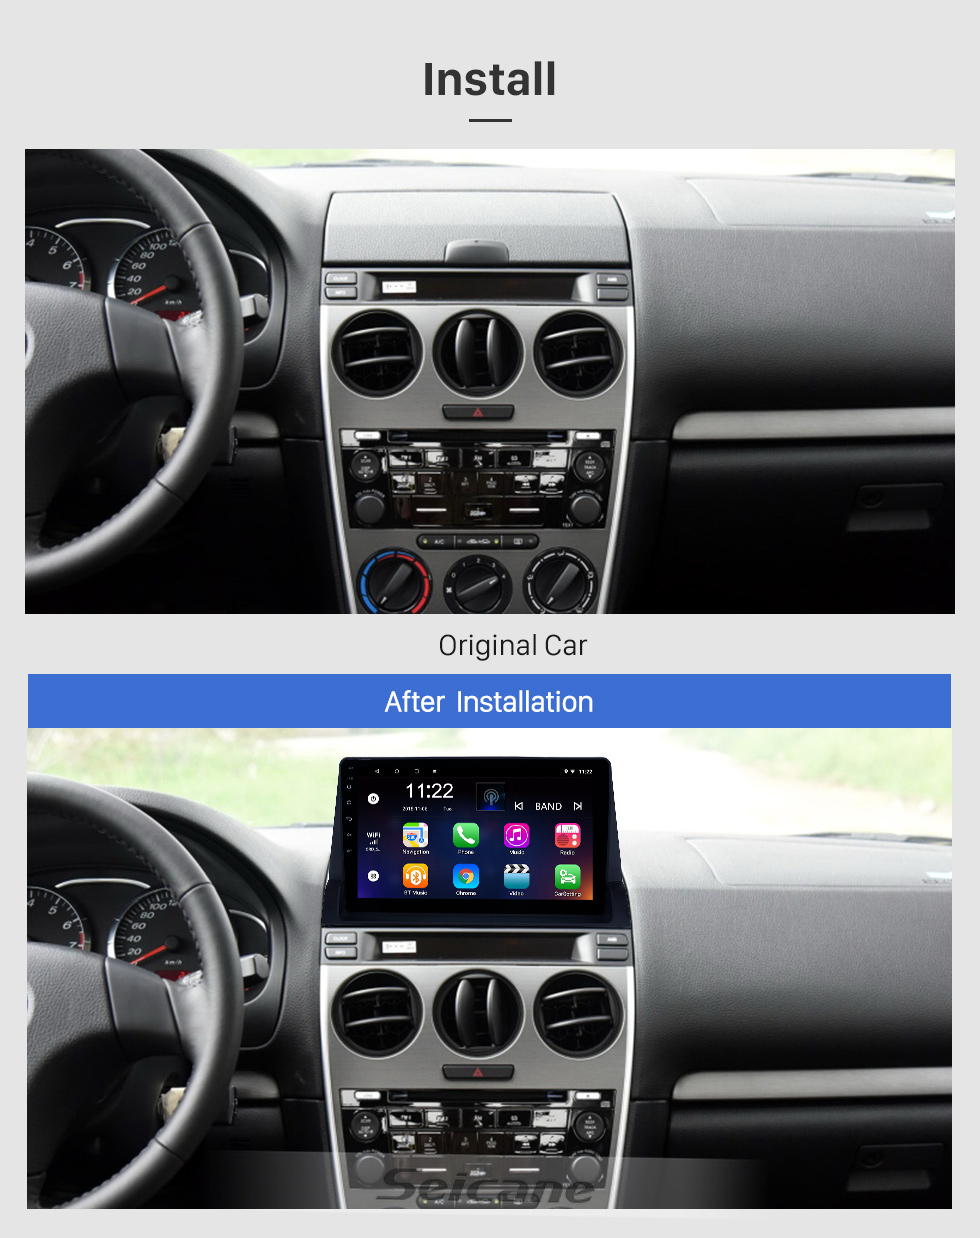 Seicane HD Touchscreen 10.1 inch Android 8.1 GPS Navigation Radio for 2002-2008 Old Mazda 6 with Bluetooth USB support Carplay Mirror Link Backup camera